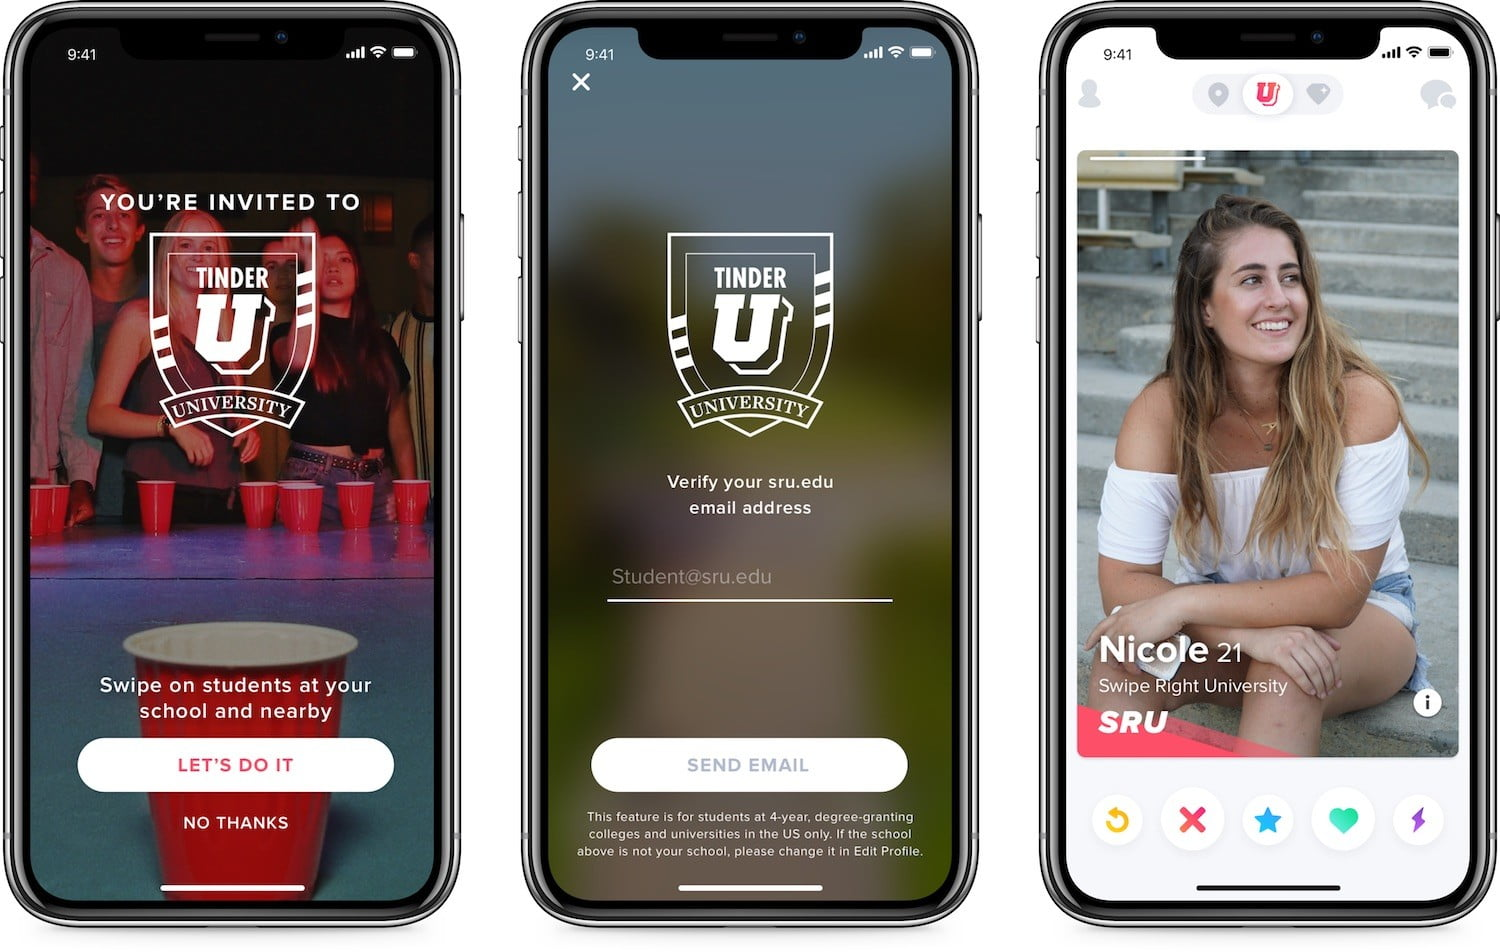 Tinder Launches 'Tinder U' For Students Attending Four-Year